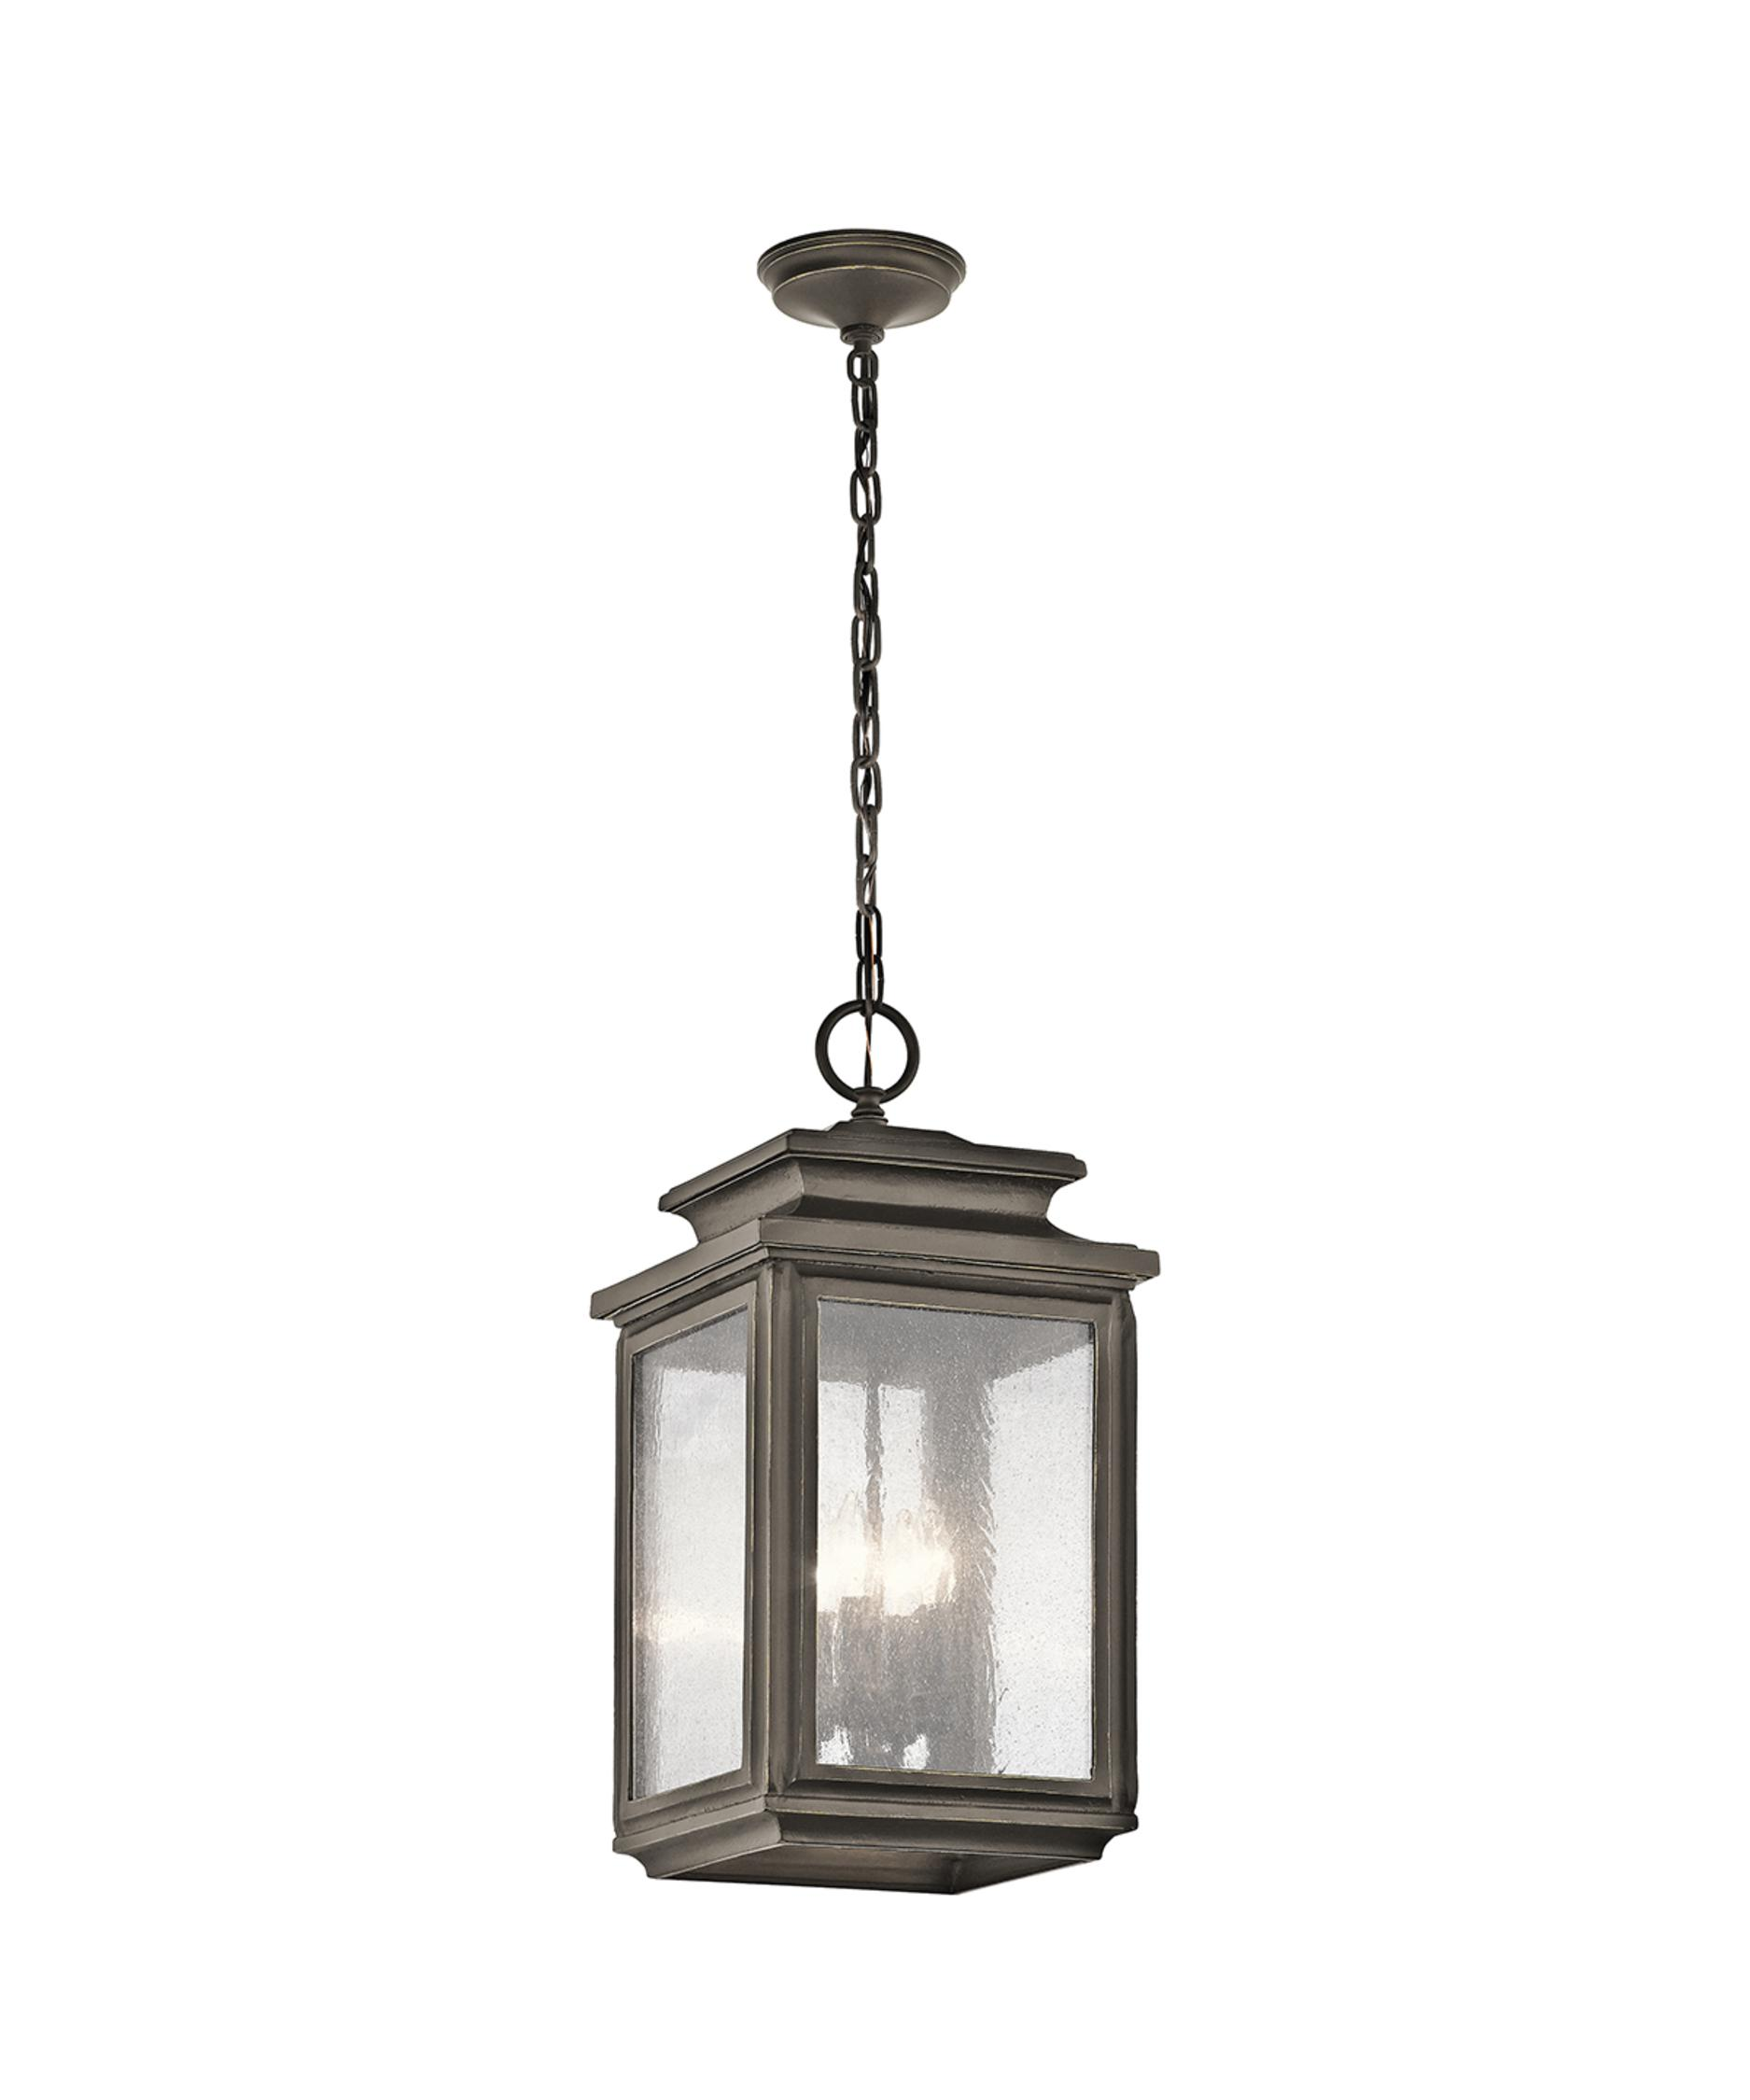 Outdoor hanging lamp - Shown In Olde Bronze Finish And Clear Seedy Glass